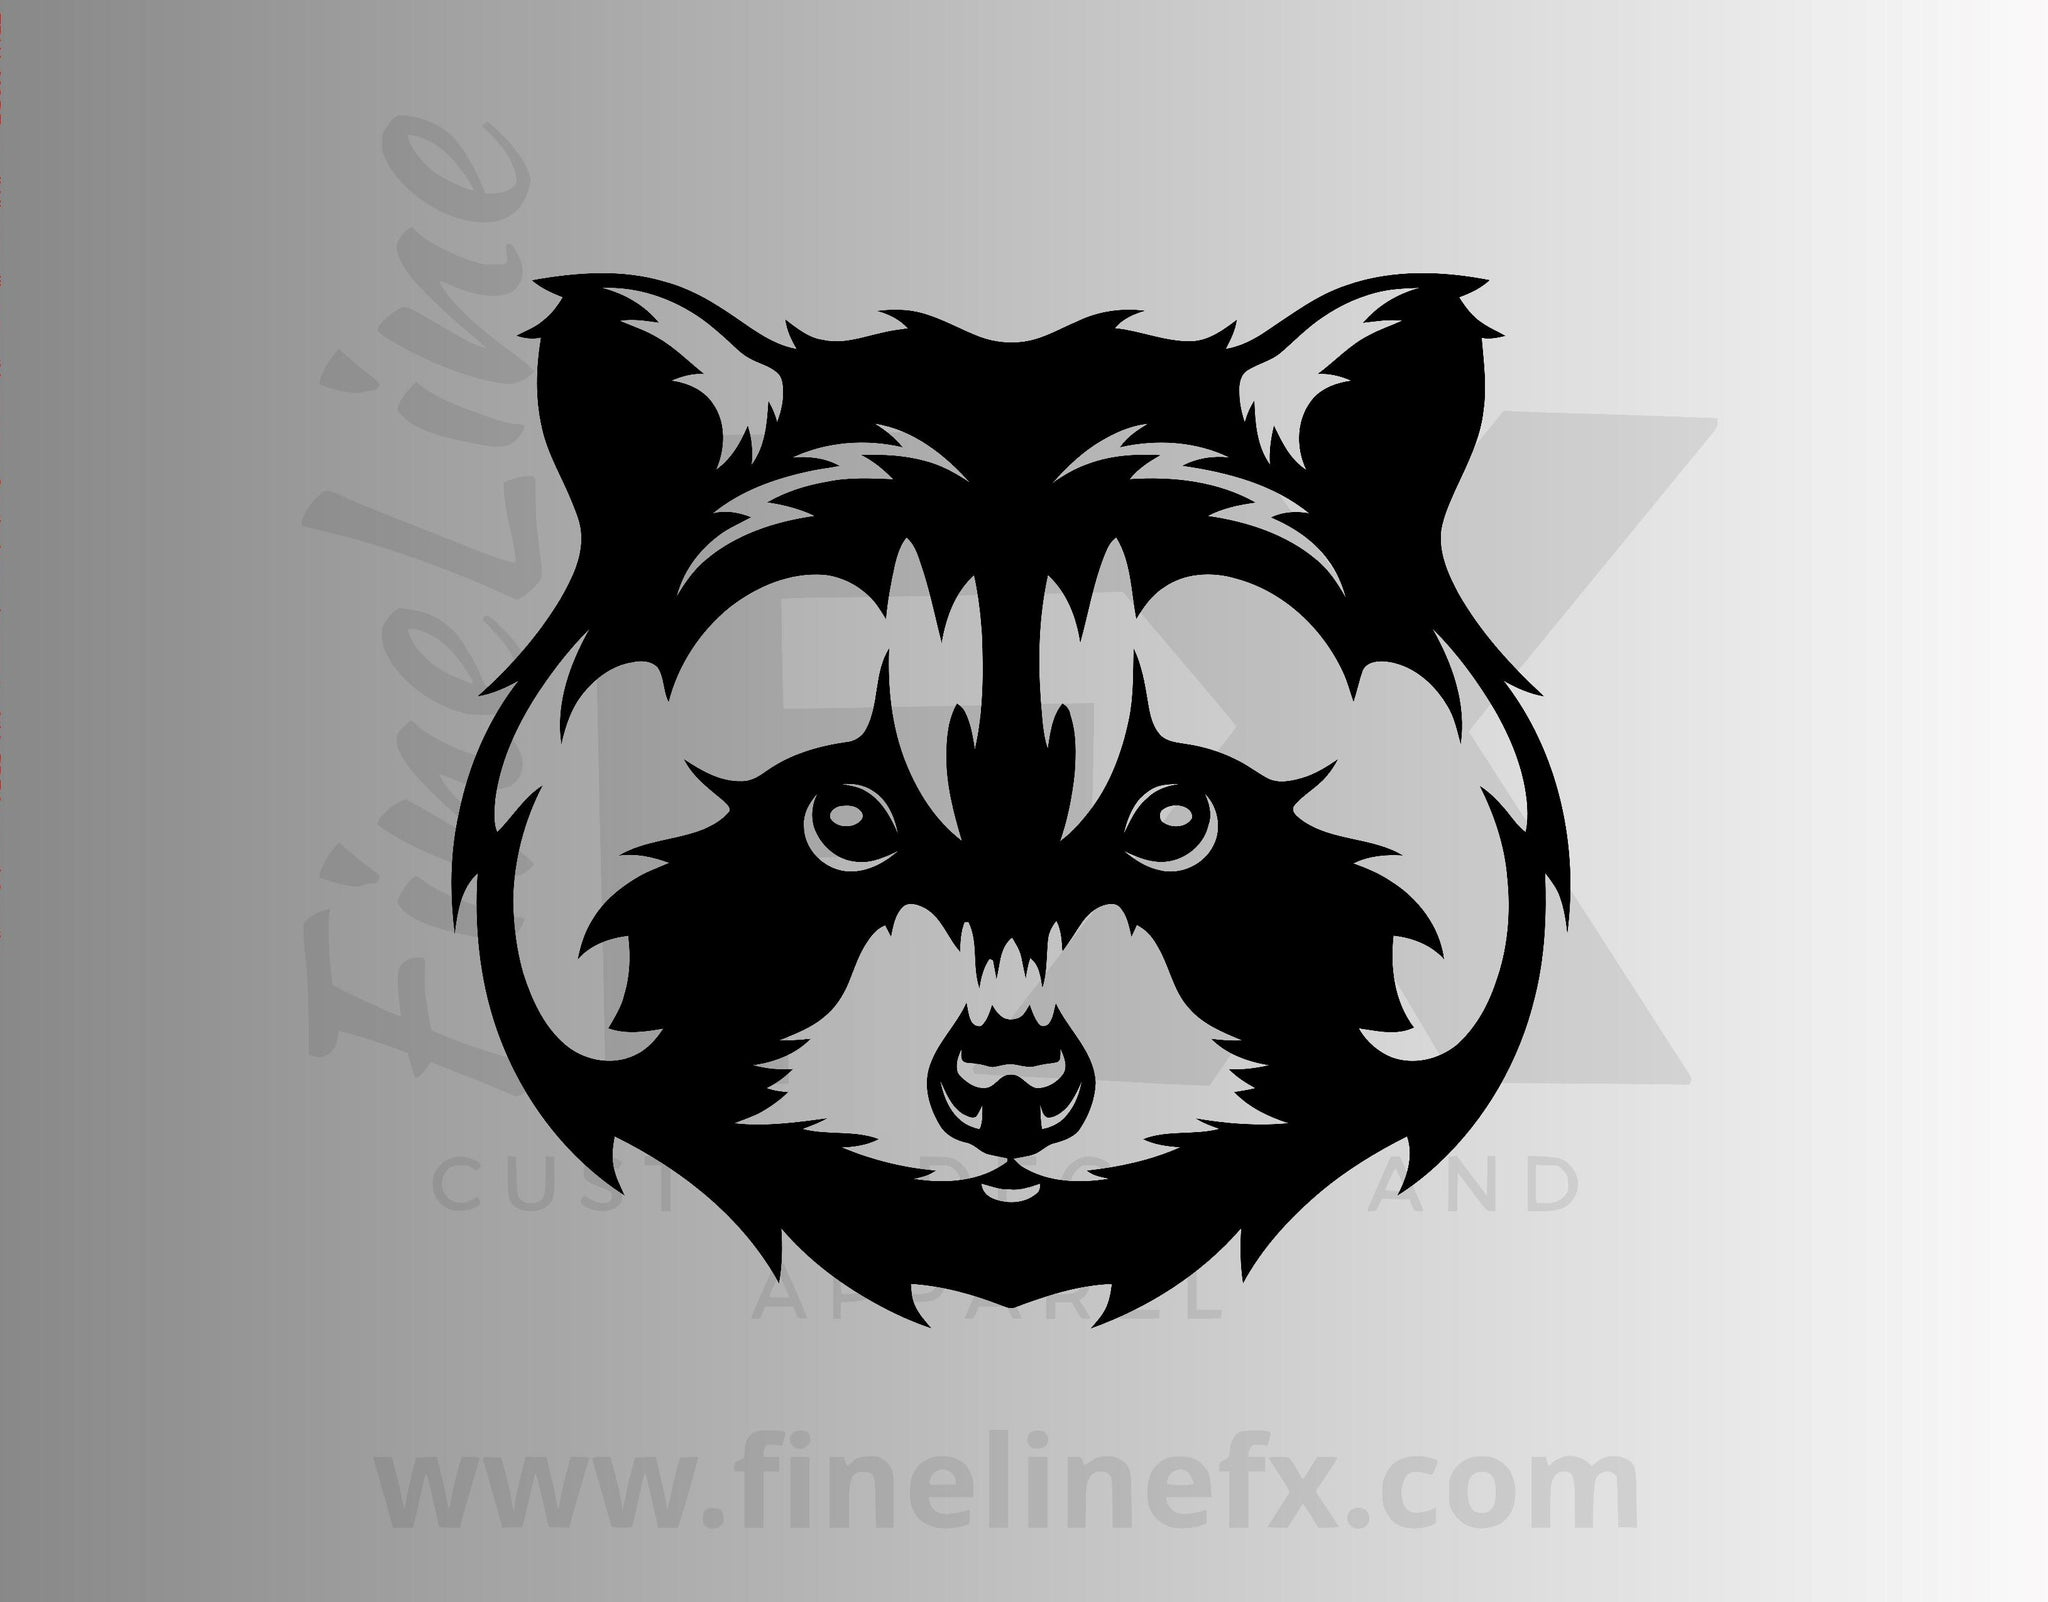 Raccoon Vinyl Decal Sticker